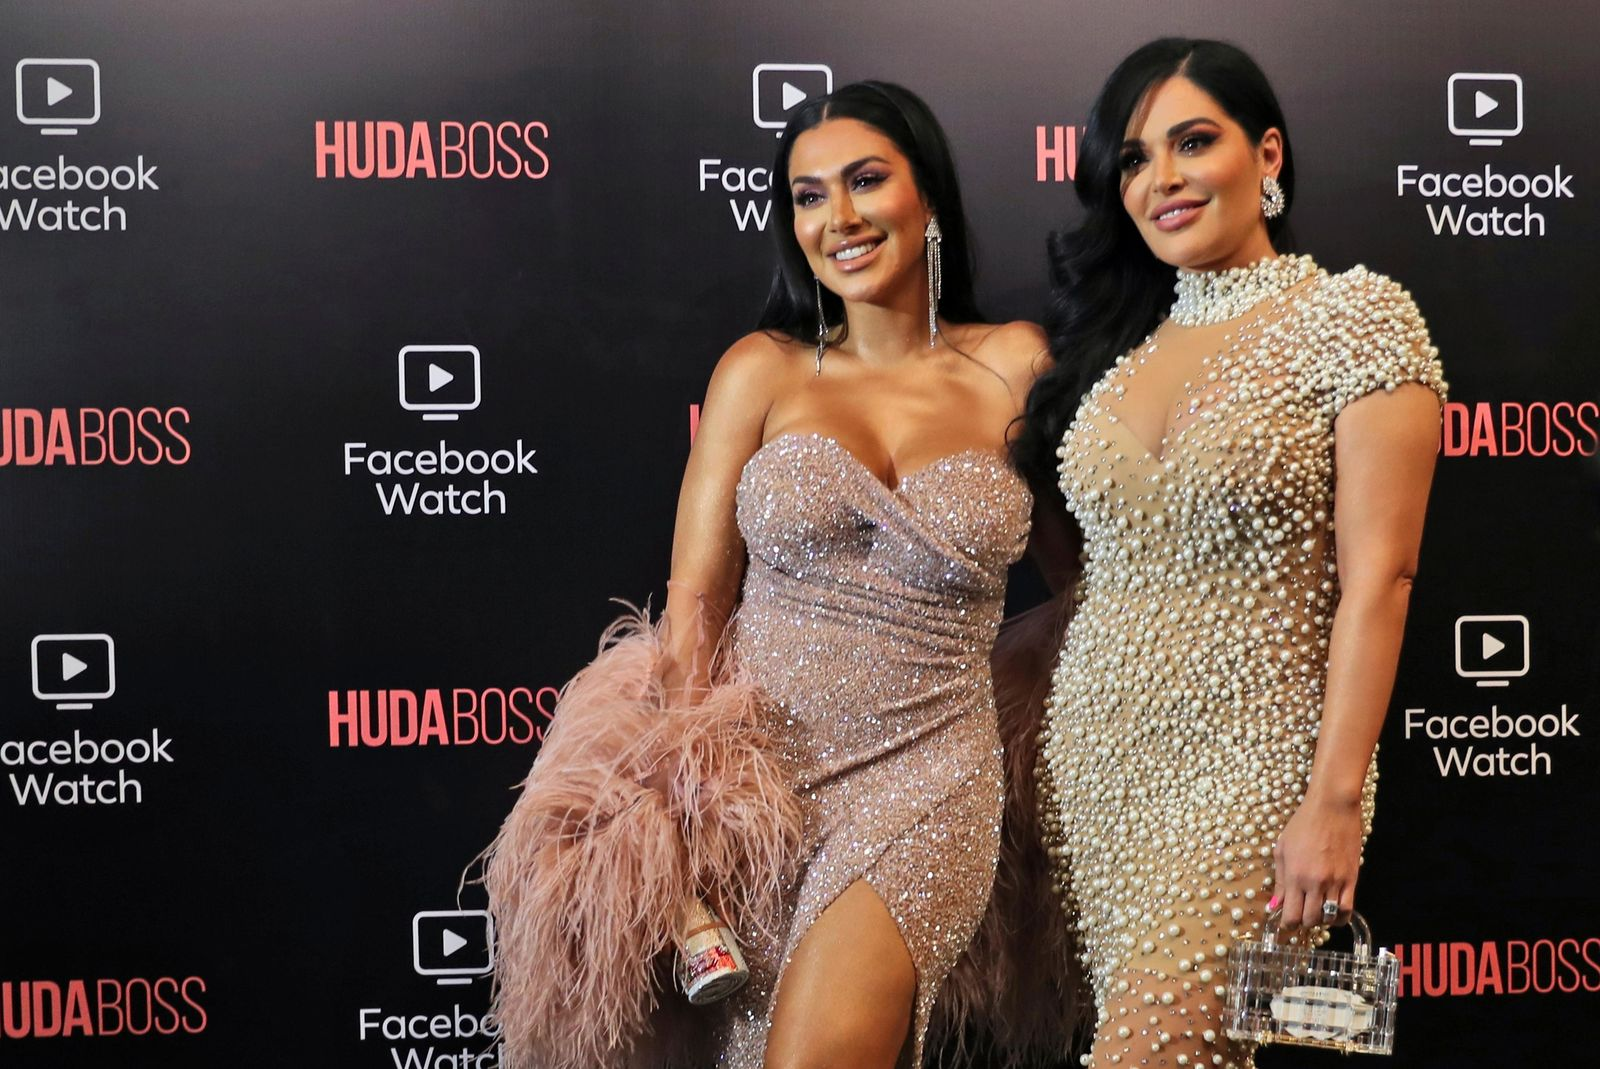 Huda Kattan, left, and Mona Kattan, pose at the Huda Boss on Facebook Watch screening celebration in Dubai, United Arab Emirates, Wednesday, Oct. 9, 2019. (AP Photo/Kamran Jebreili)